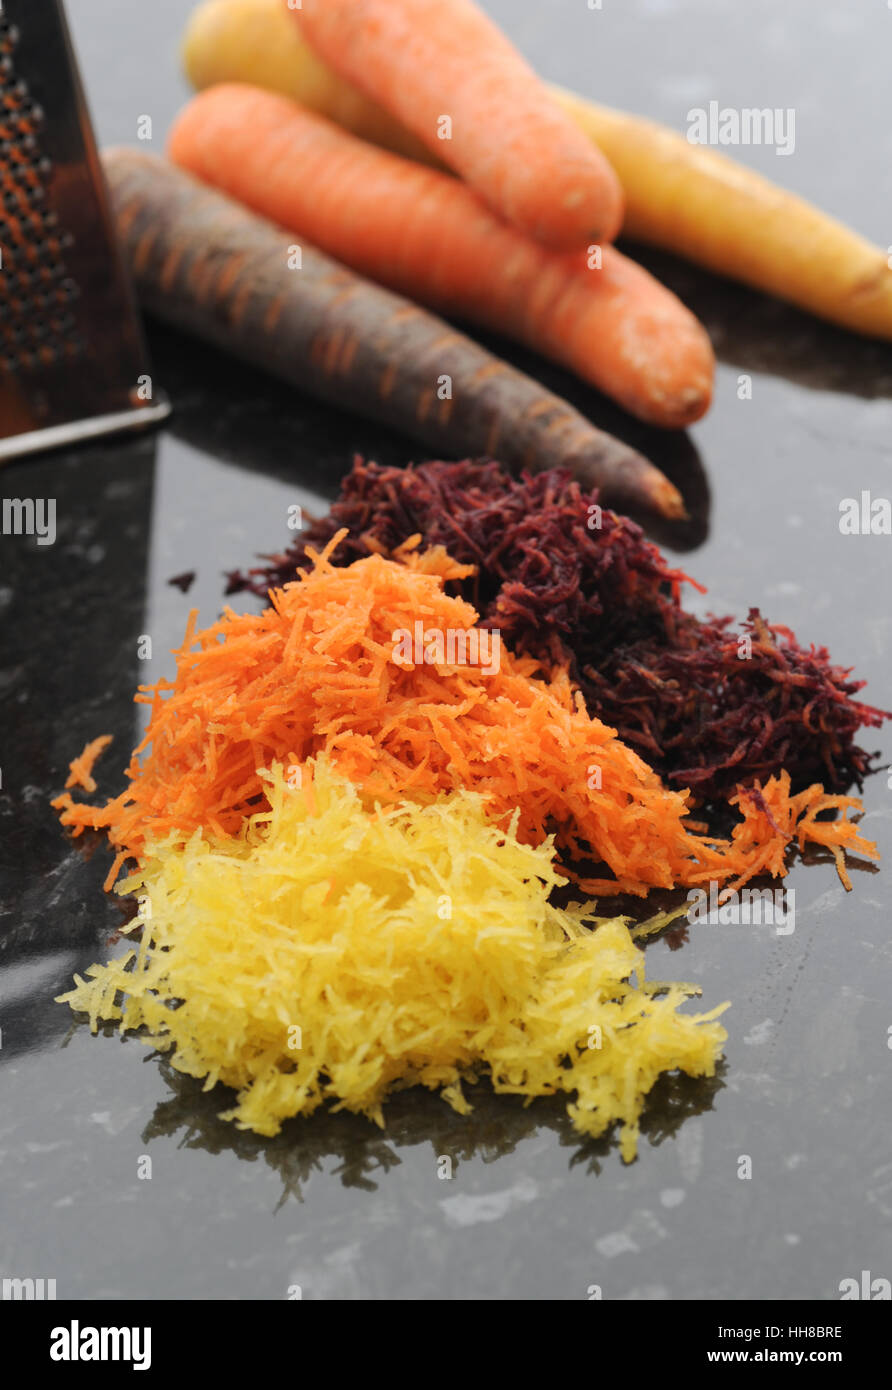 Grated carrot. Yellow, orange and purple. Stock Photo